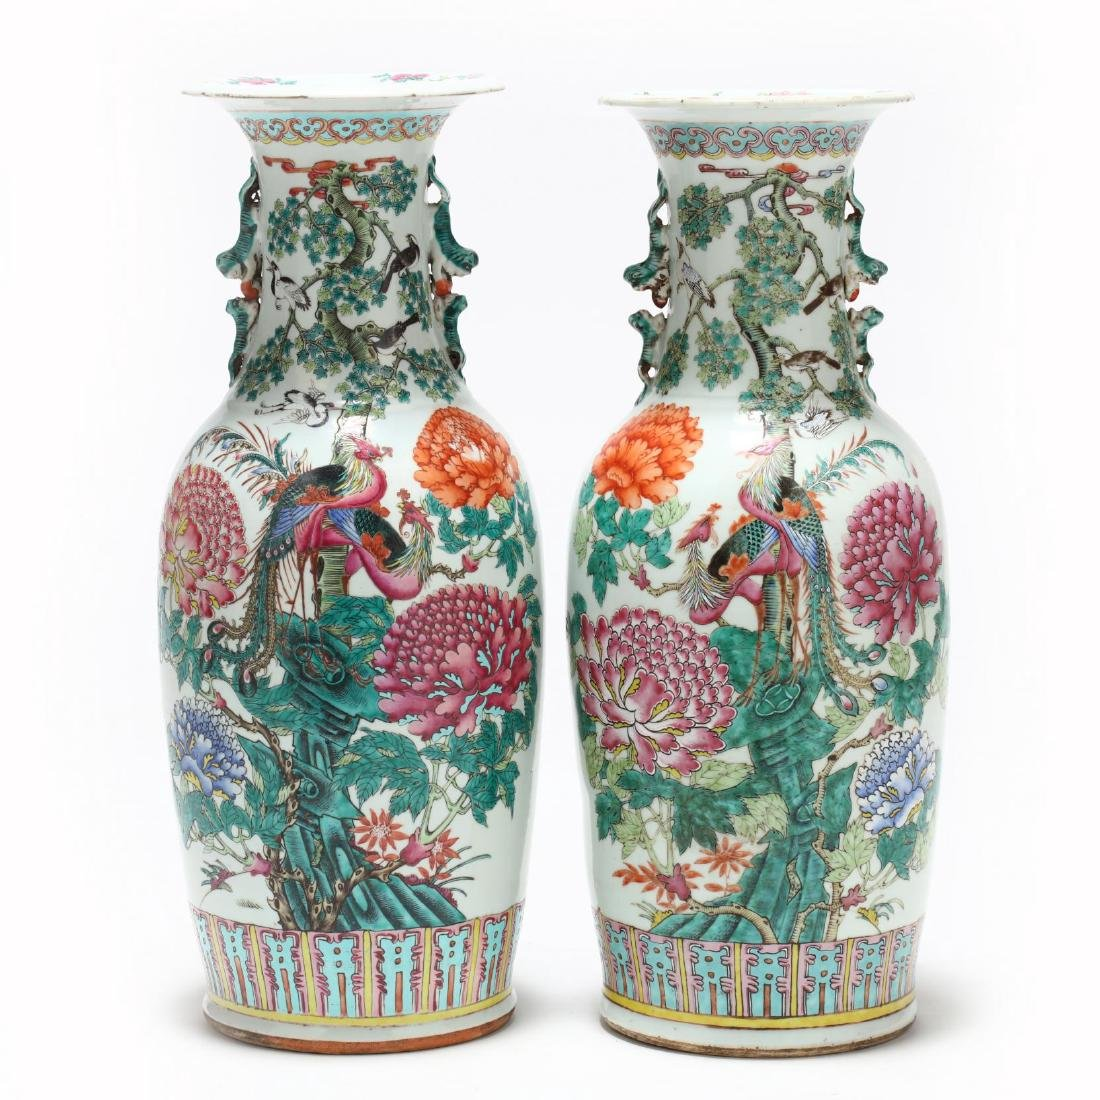 A Pair of Large Chinese Export Famille Rose Vases